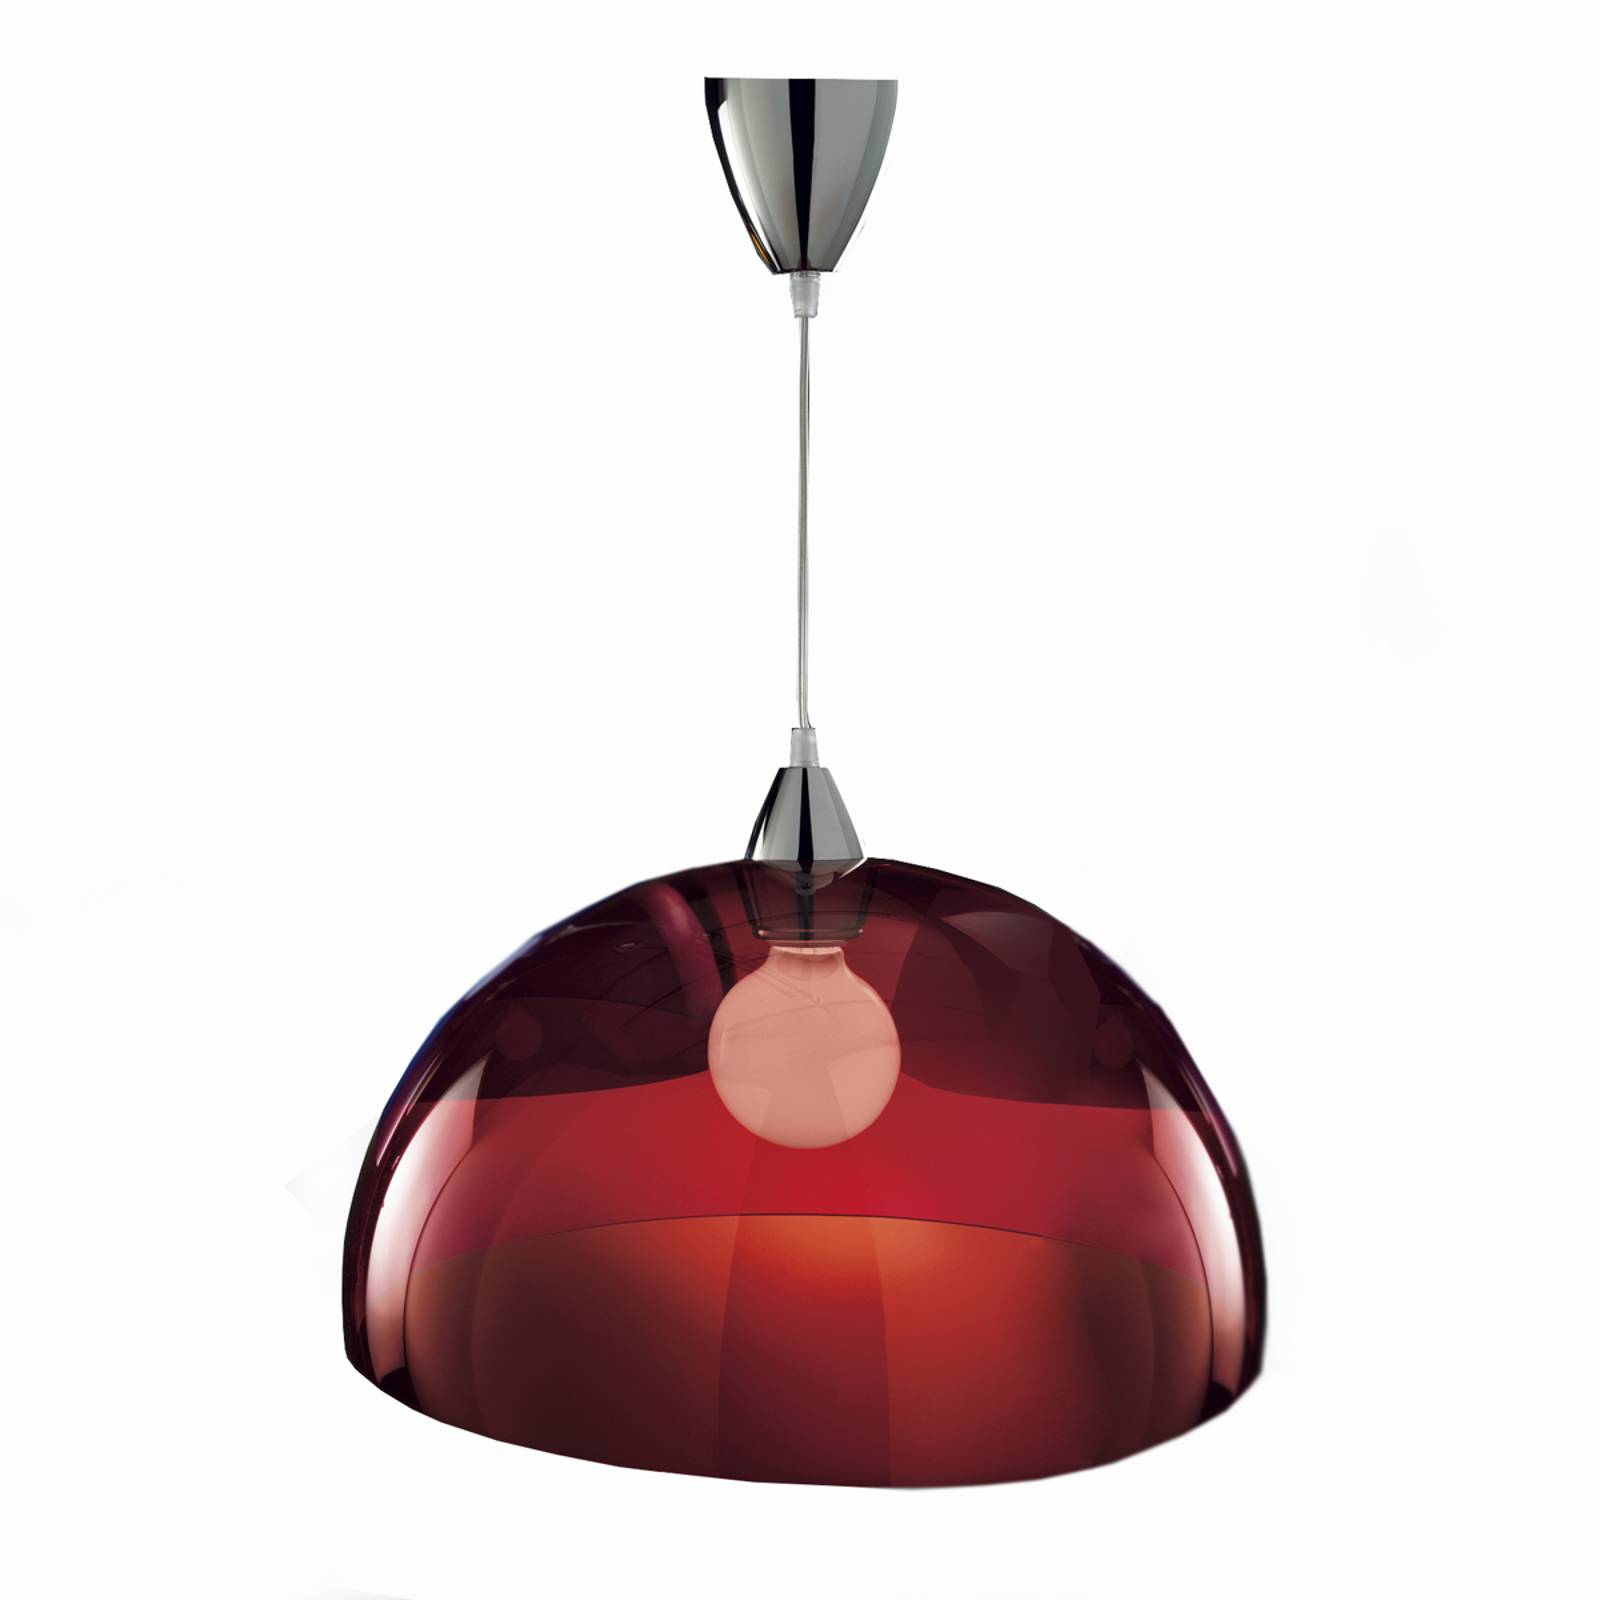 Stylish designer hanging light BLOB red from Sil-Lux